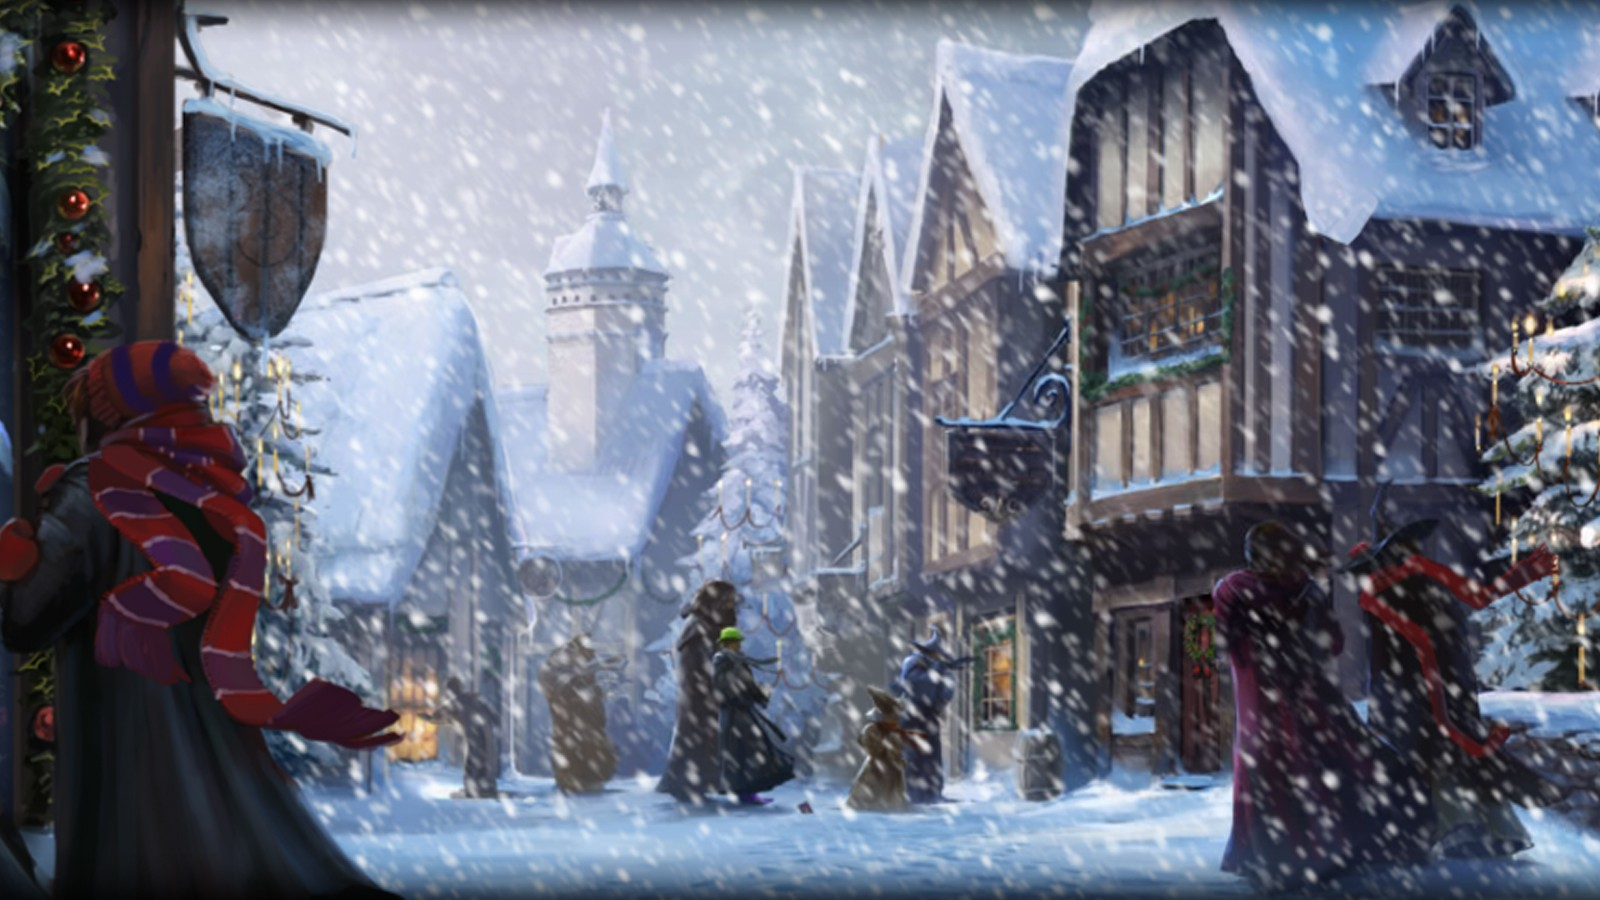 Pottermore Background: Hogsmeade at Christmas by xxtayce on DeviantArt